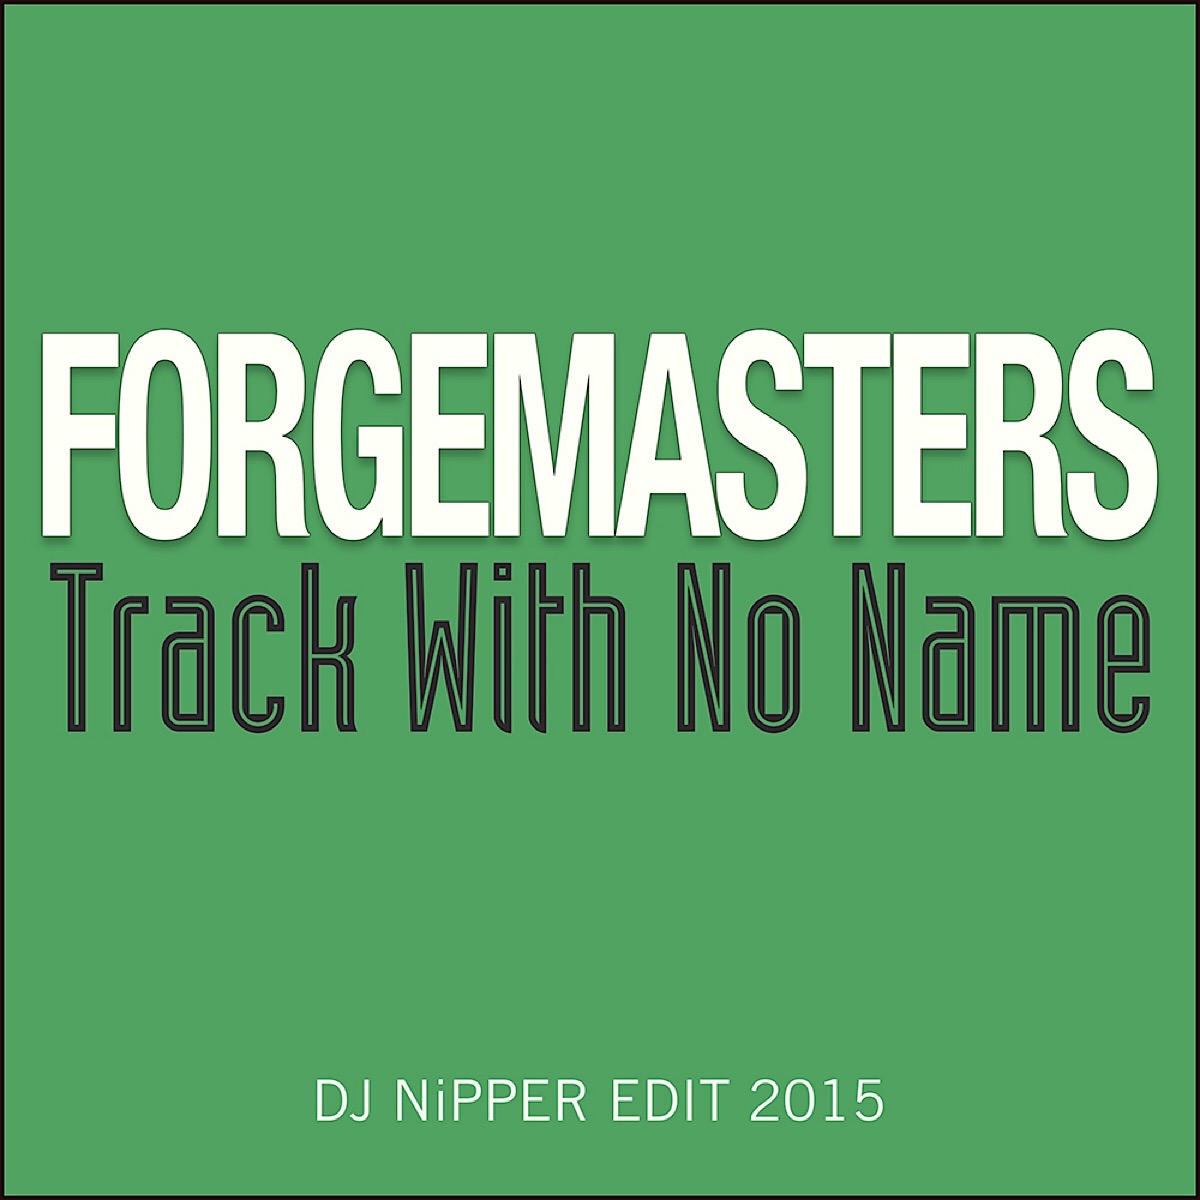 Forgemasters Track With No Name